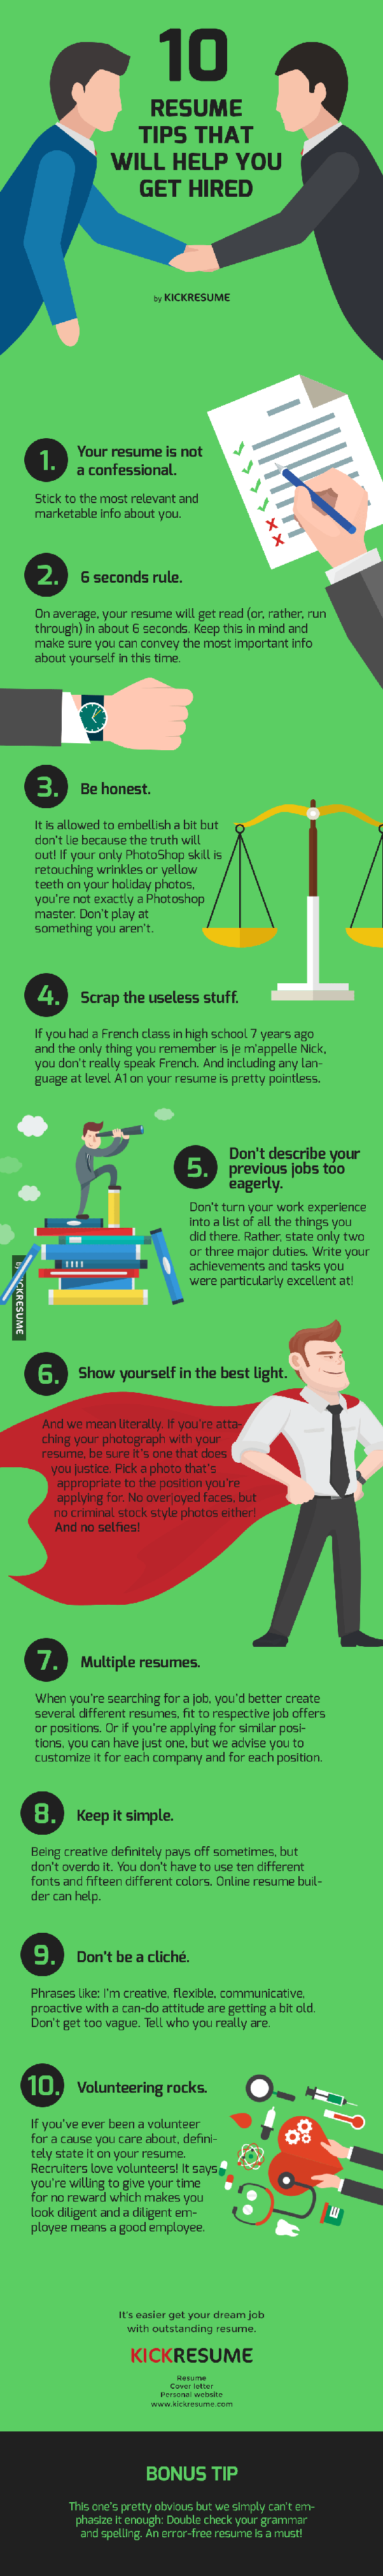 how to build a strong resume